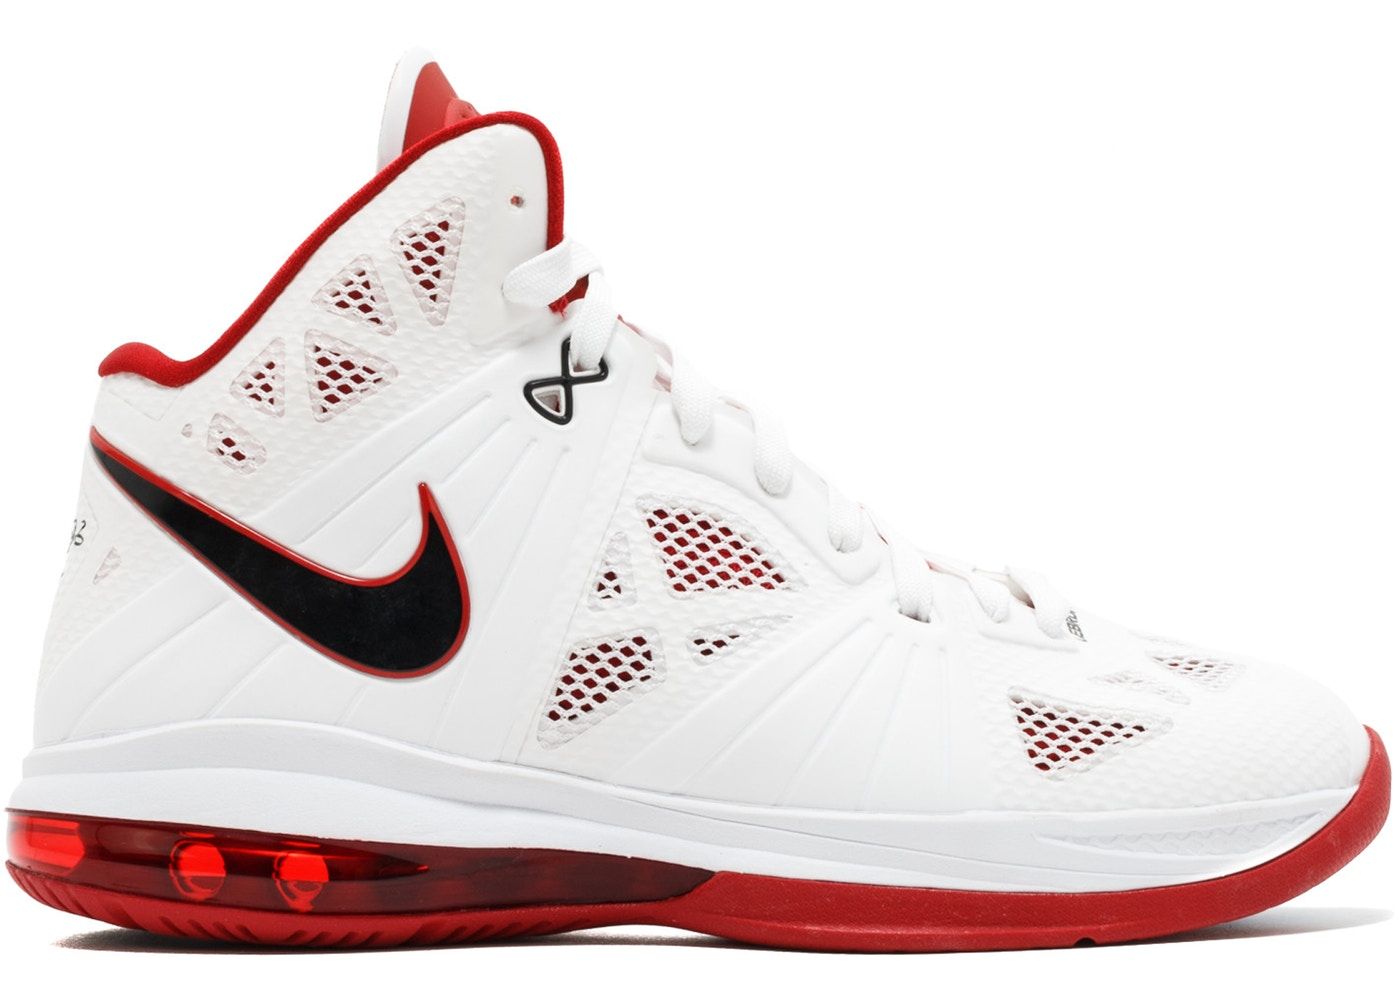 factory price 5e73d 460df Buy Nike LeBron 8 Shoes   Deadstock Sneakers